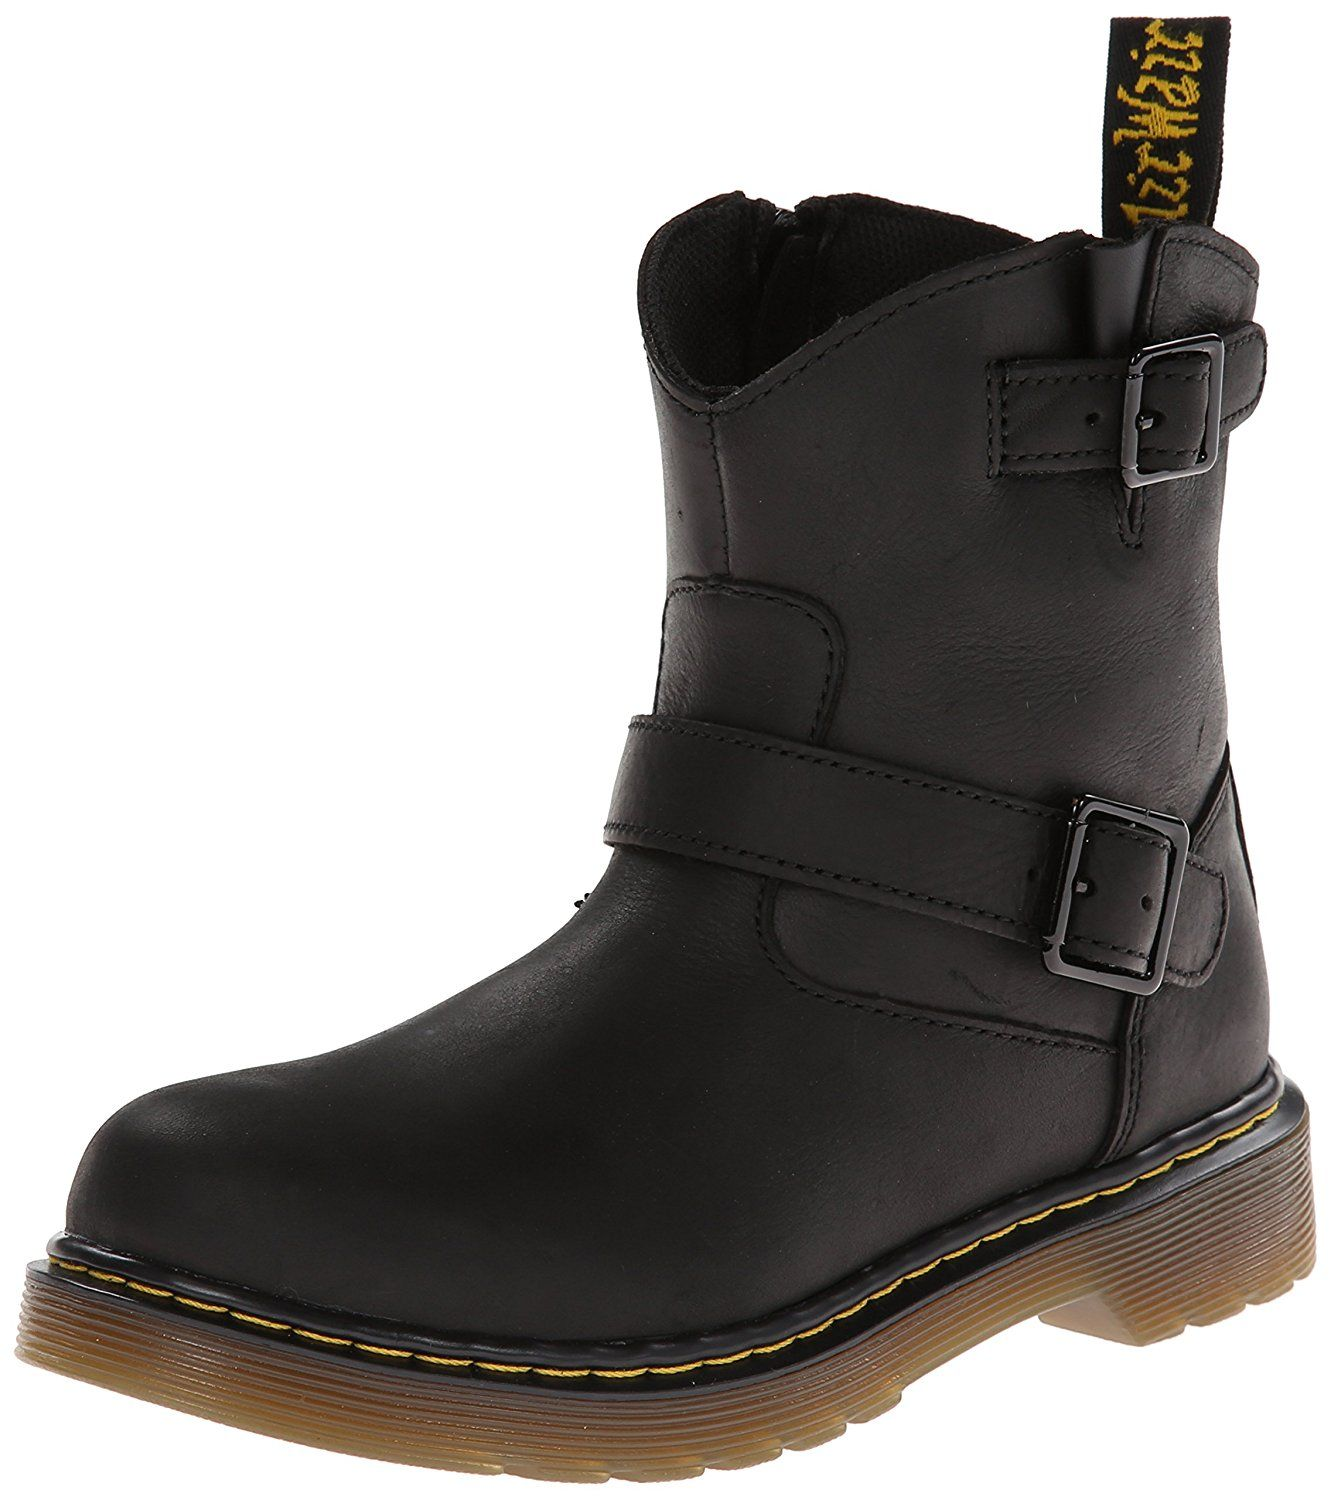 Karin Broadway, Womens Ankle Boots Dr. Martens